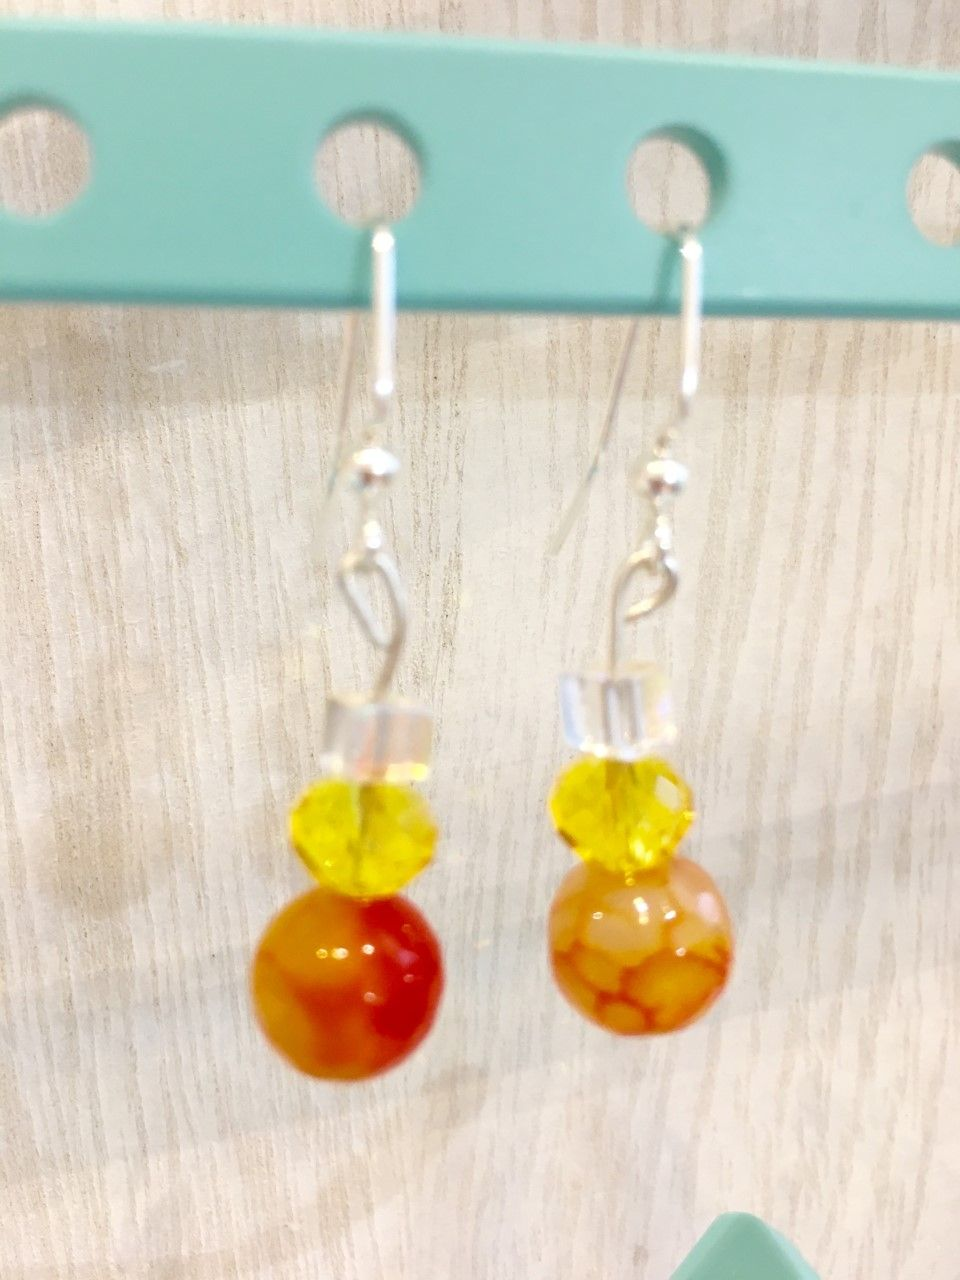 Fire Dragon   Made a powerful statement with this stunning and glamorous pair of earrings. Be provocative and memorable  Materials:   - Orange faceted Agate - Swarovski crystals - Pure Silver .95